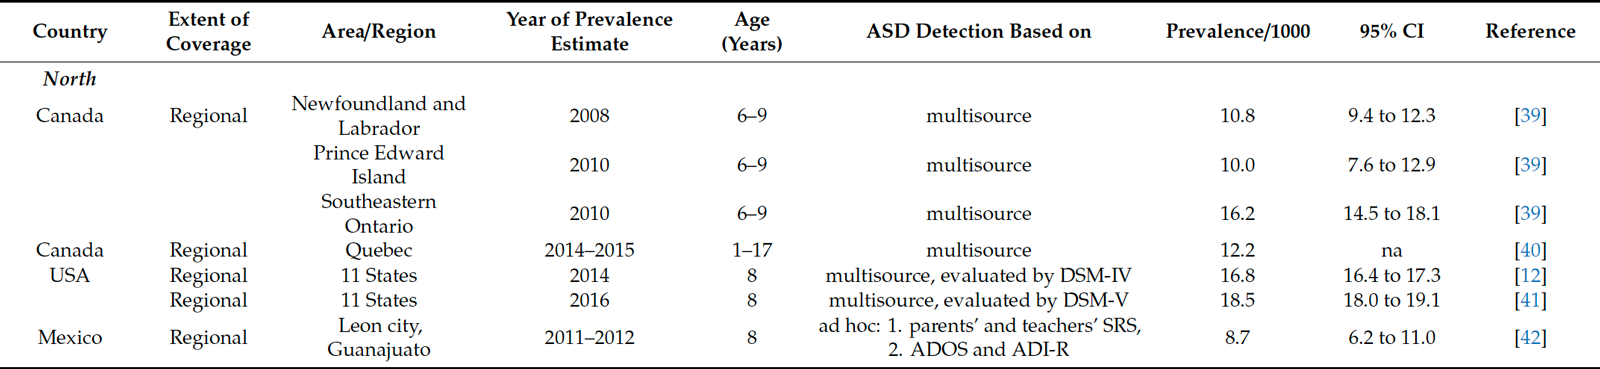 Table 4. Summary of prevalence studies published since 2014 in North America.